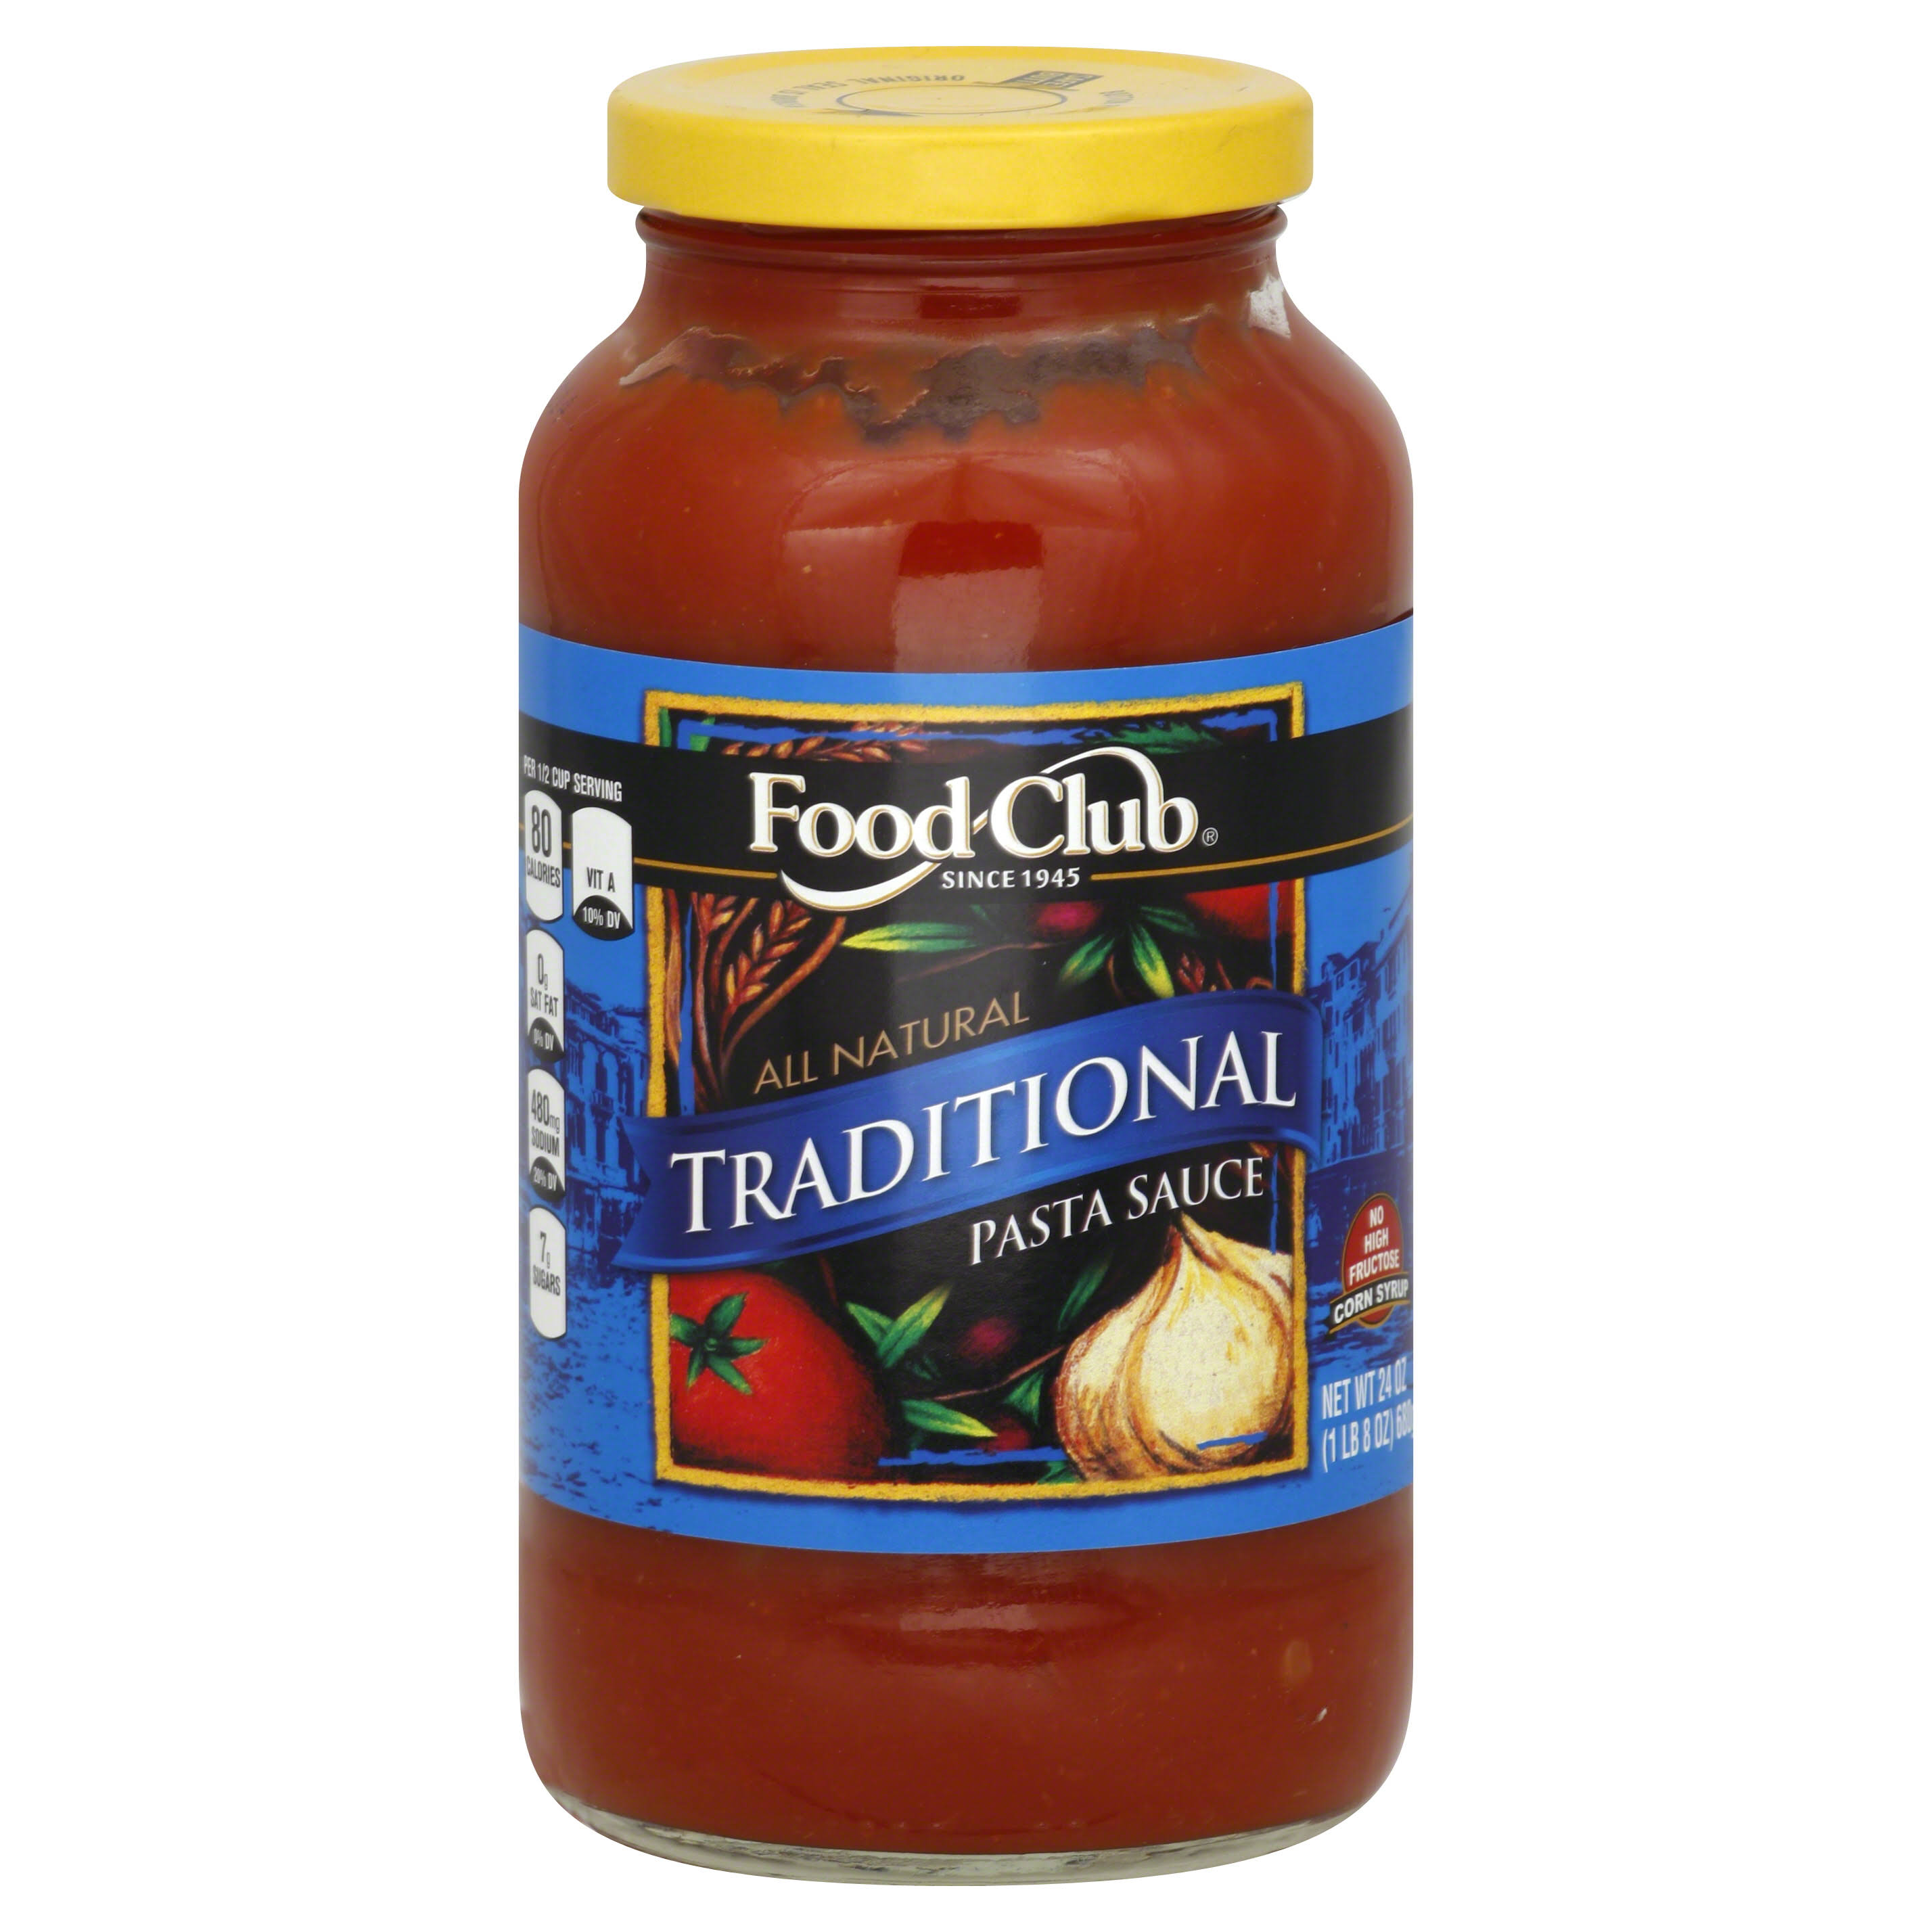 Food Club Pasta Sauce, Traditional - 24 oz